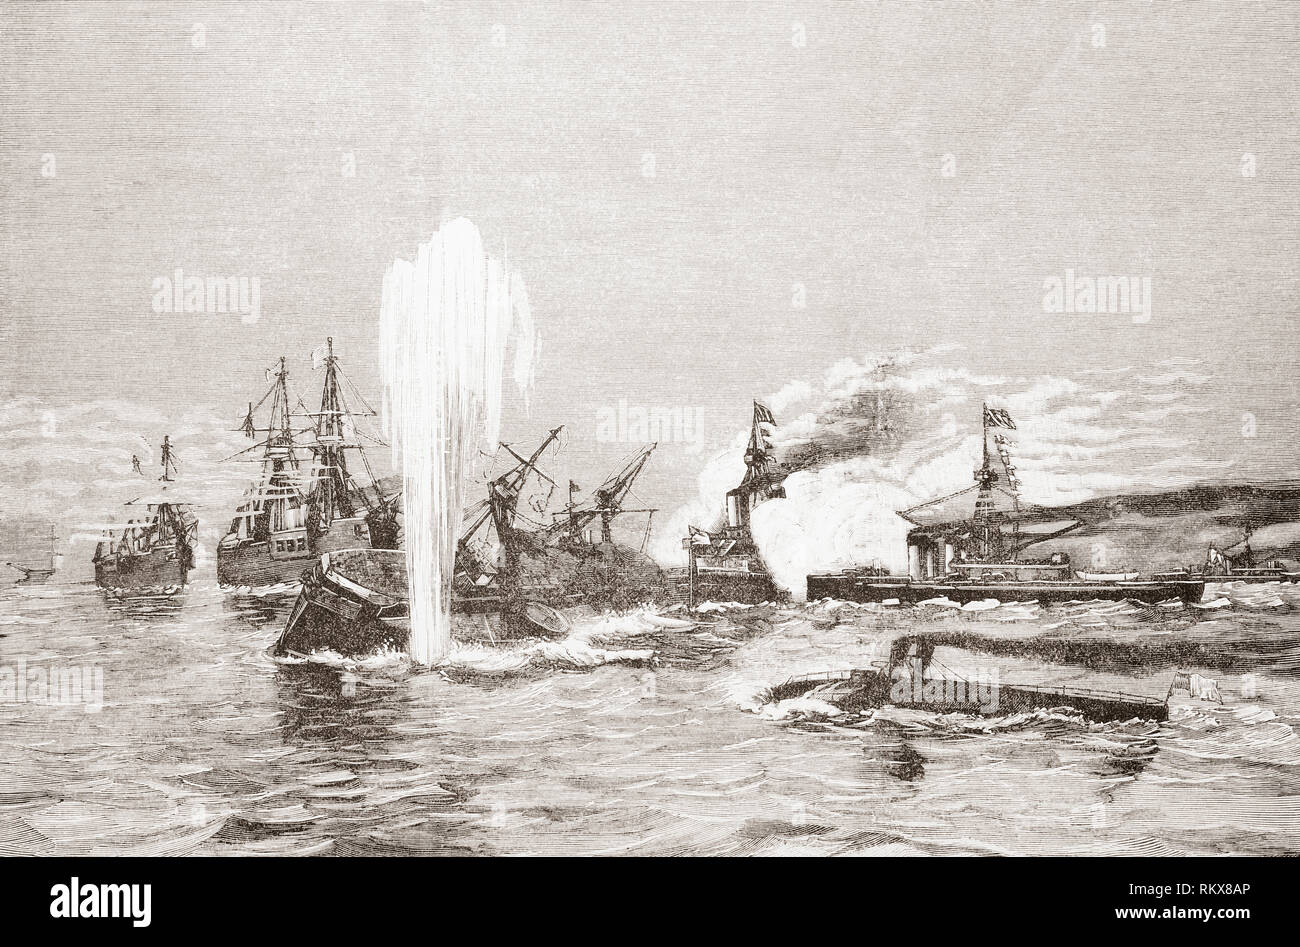 Sea battle between battleships and torpedo boats in the 19th century.  From La Ilustracion Espanola y Americana, published 1892. - Stock Image